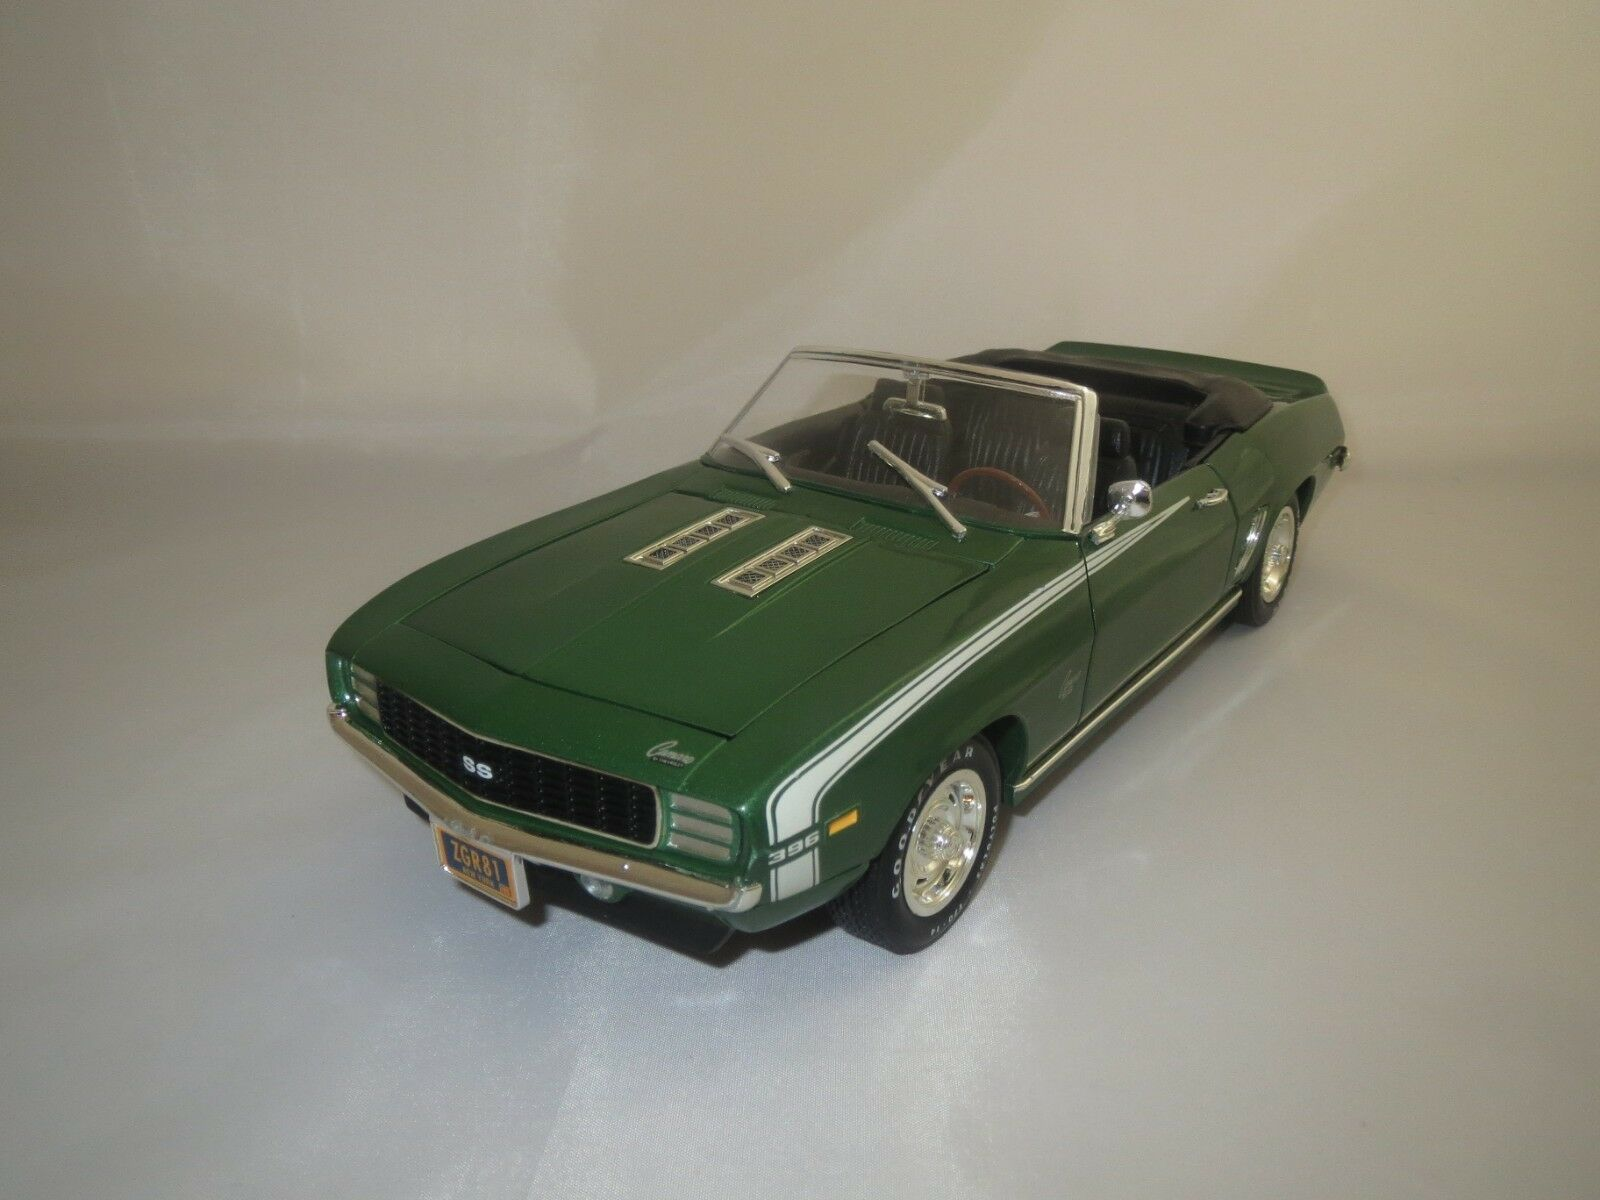 ERTL American Muscle CHEVROLET CAMARO 396 SS  1969  1 18 sans emballage  (1)